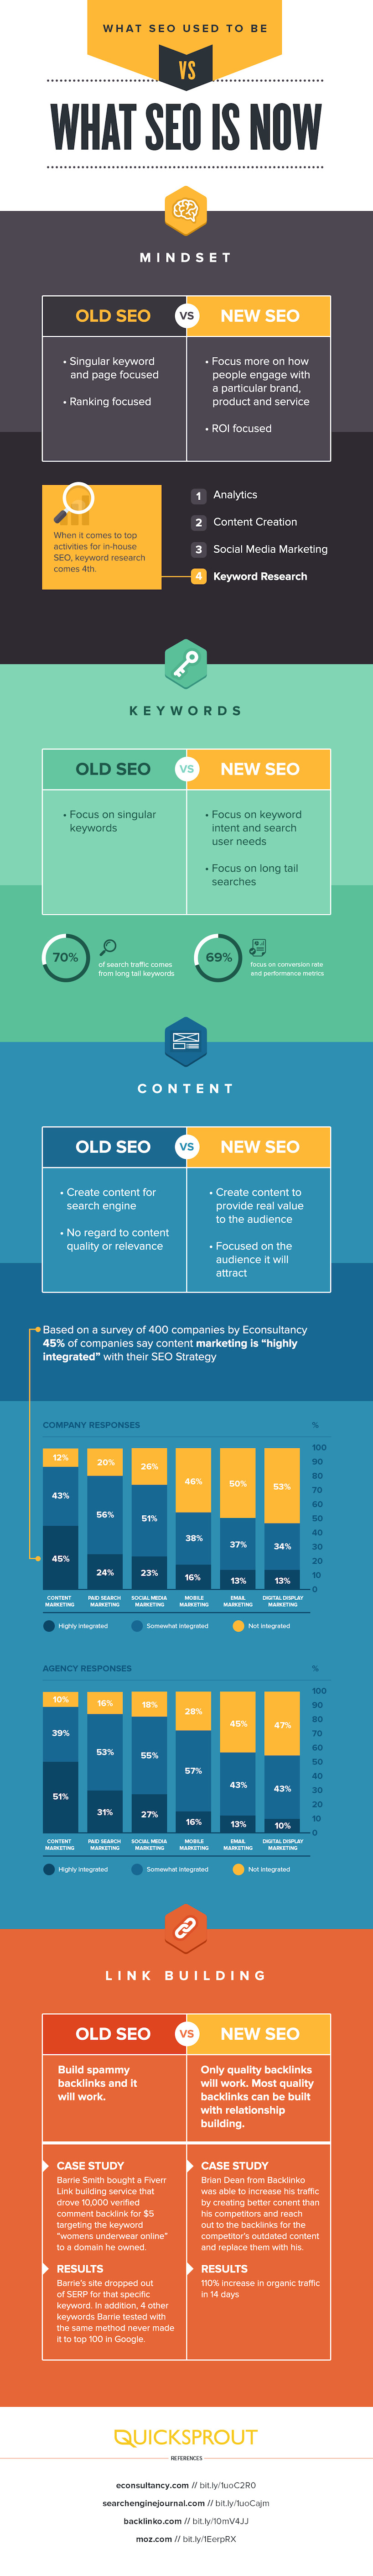 Modern SEO [INFOGRAPHIC]